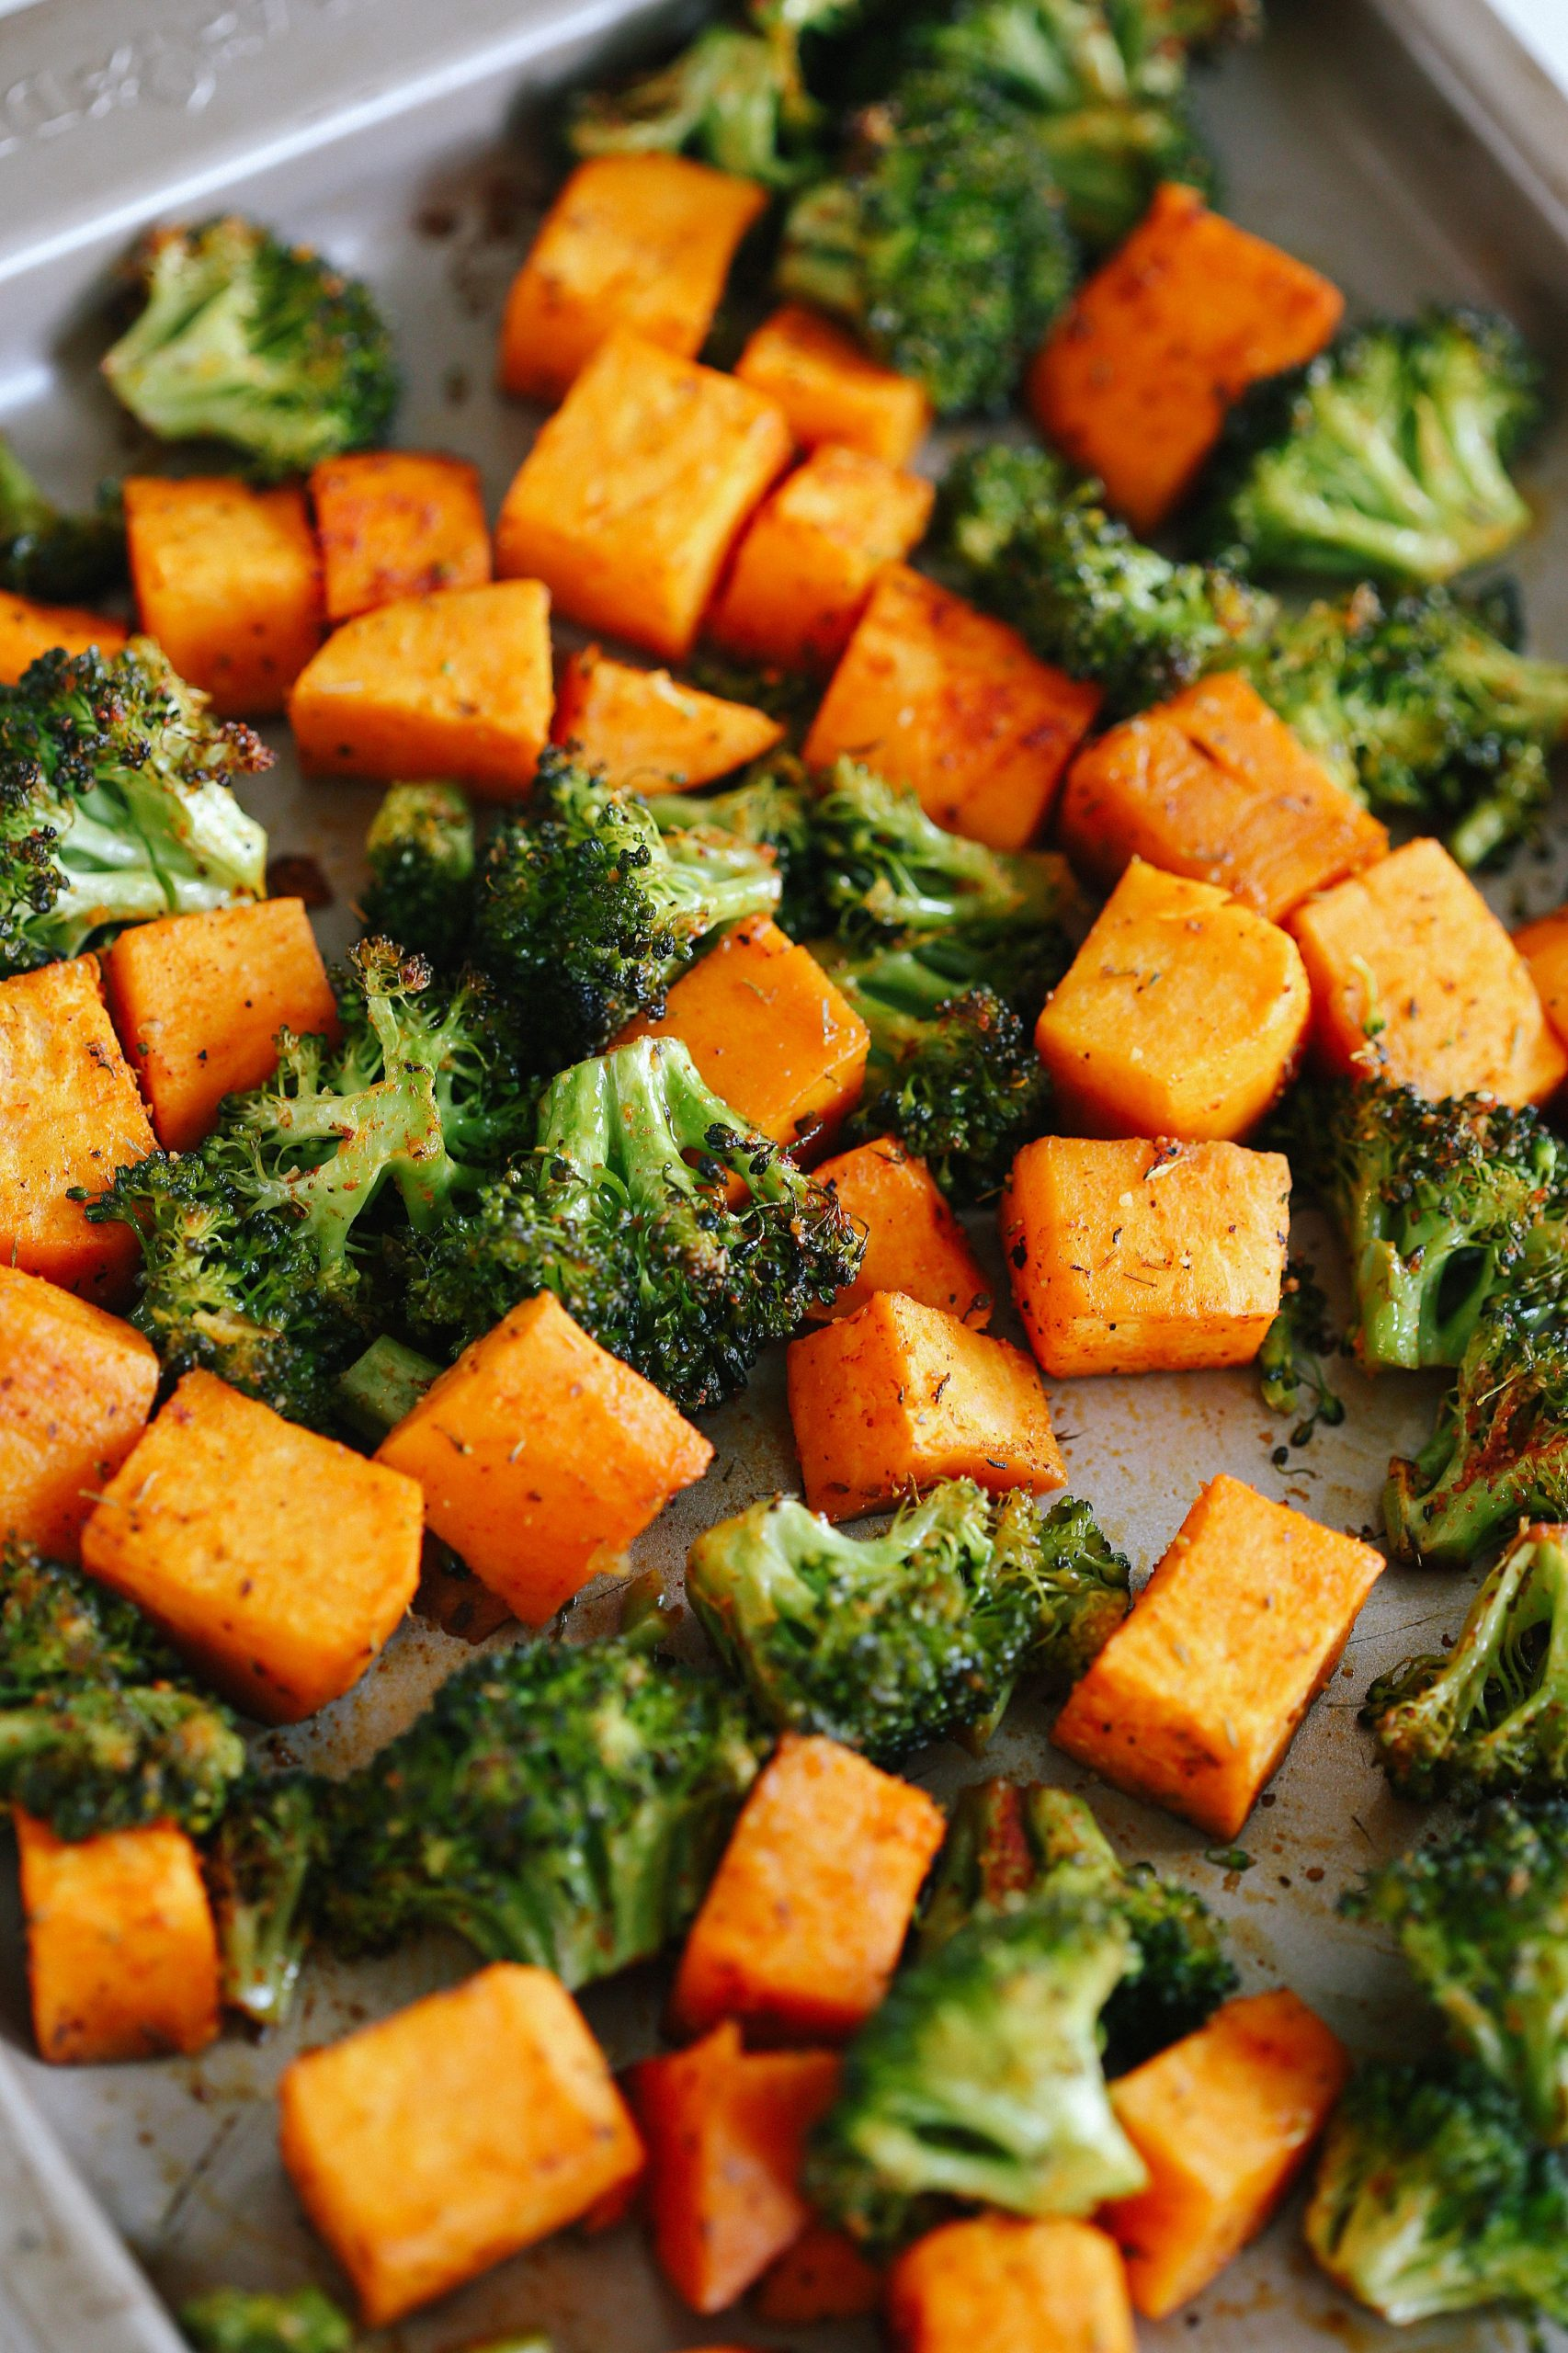 Perfectly Roasted Broccoli & Sweet Potatoes - Vegetable Recipes Delicious